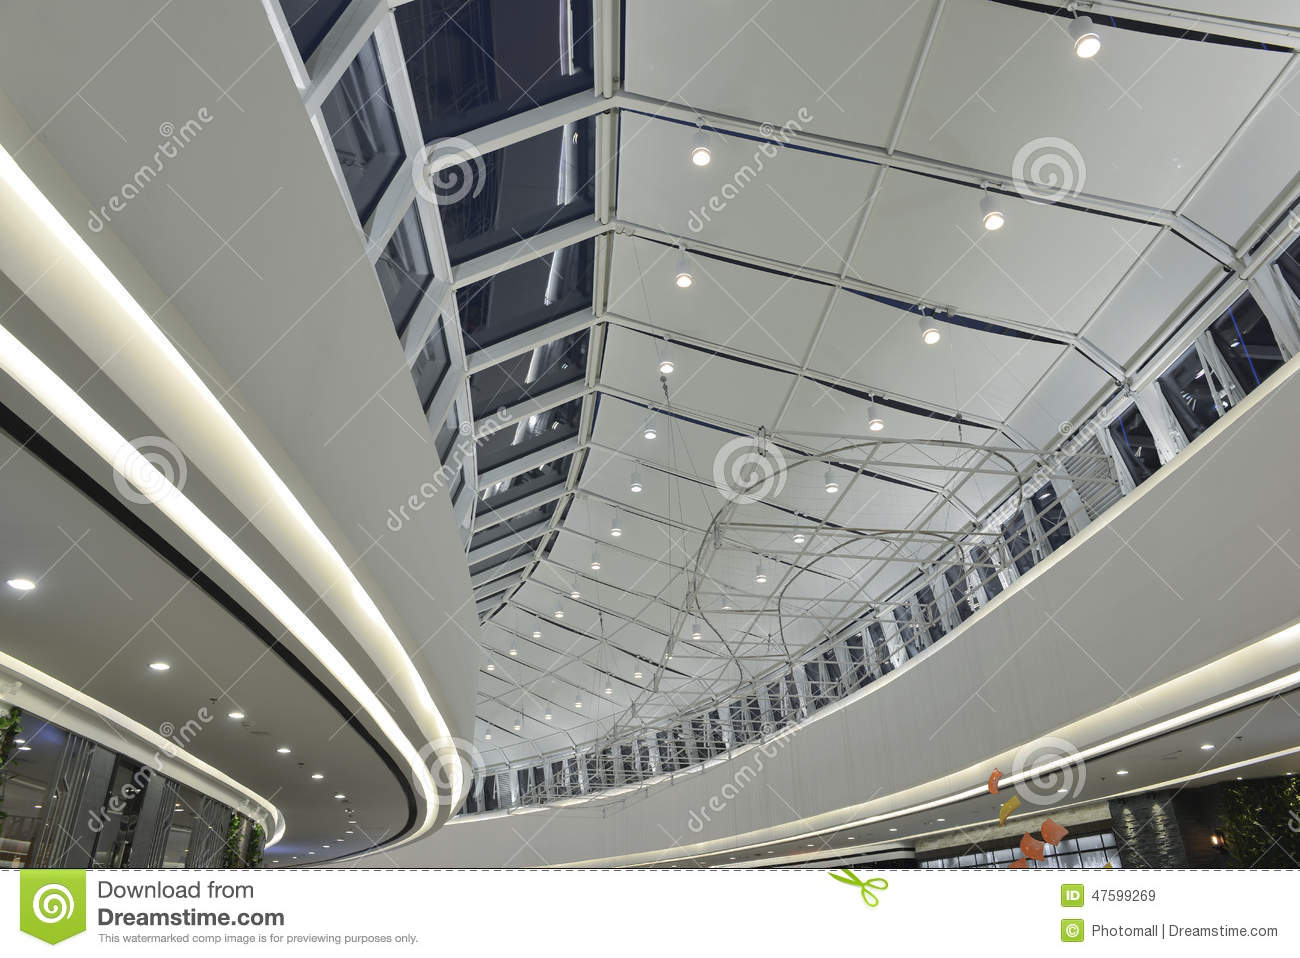 New type of led bulbs used in modern commercial building decoration new type of led bulbs used in modern commercial building decorationenergy saving lamp aloadofball Choice Image